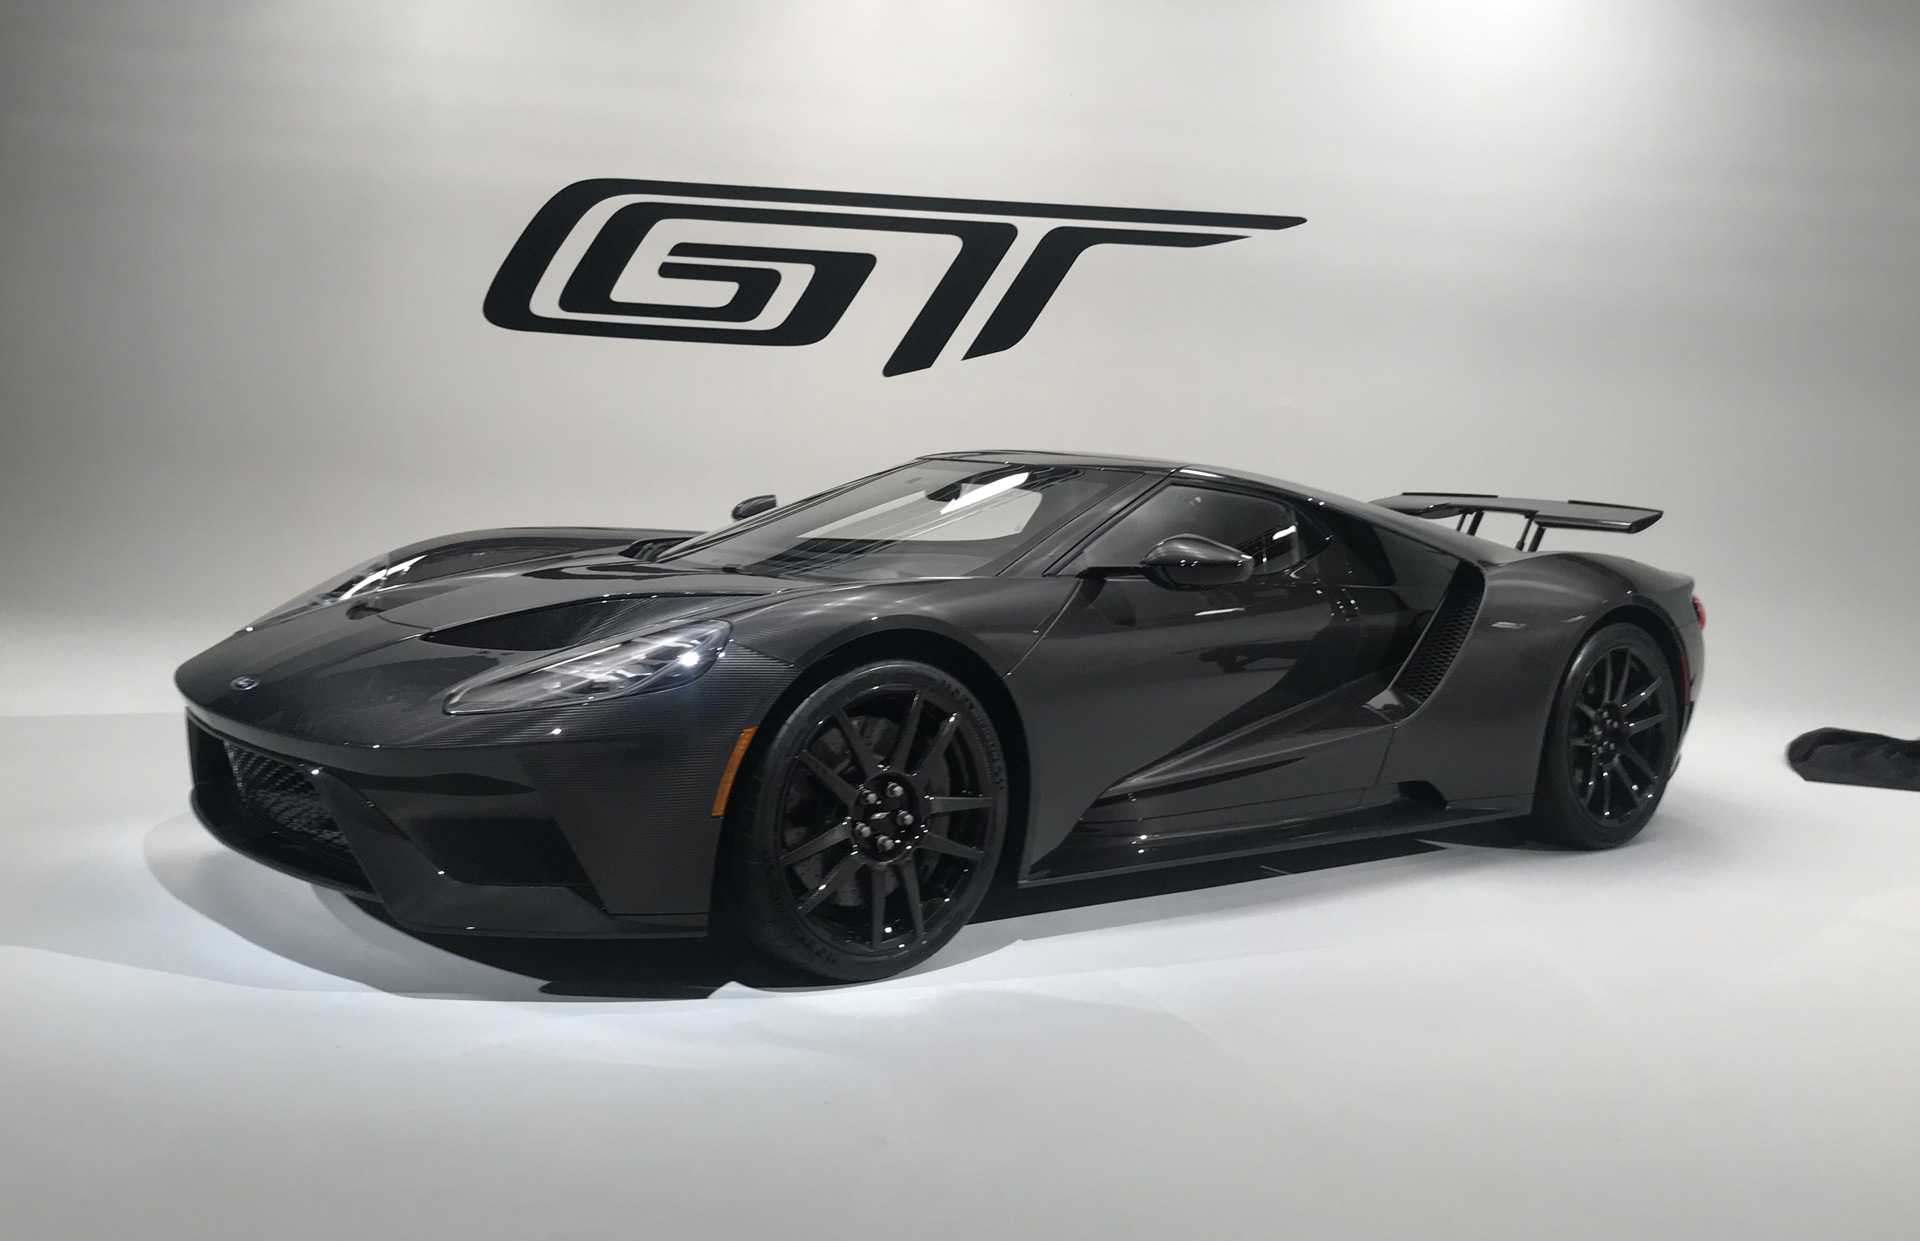 2020 Ford GT ups horsepower to 660, offers $750,000 Liquid Carbon special edition